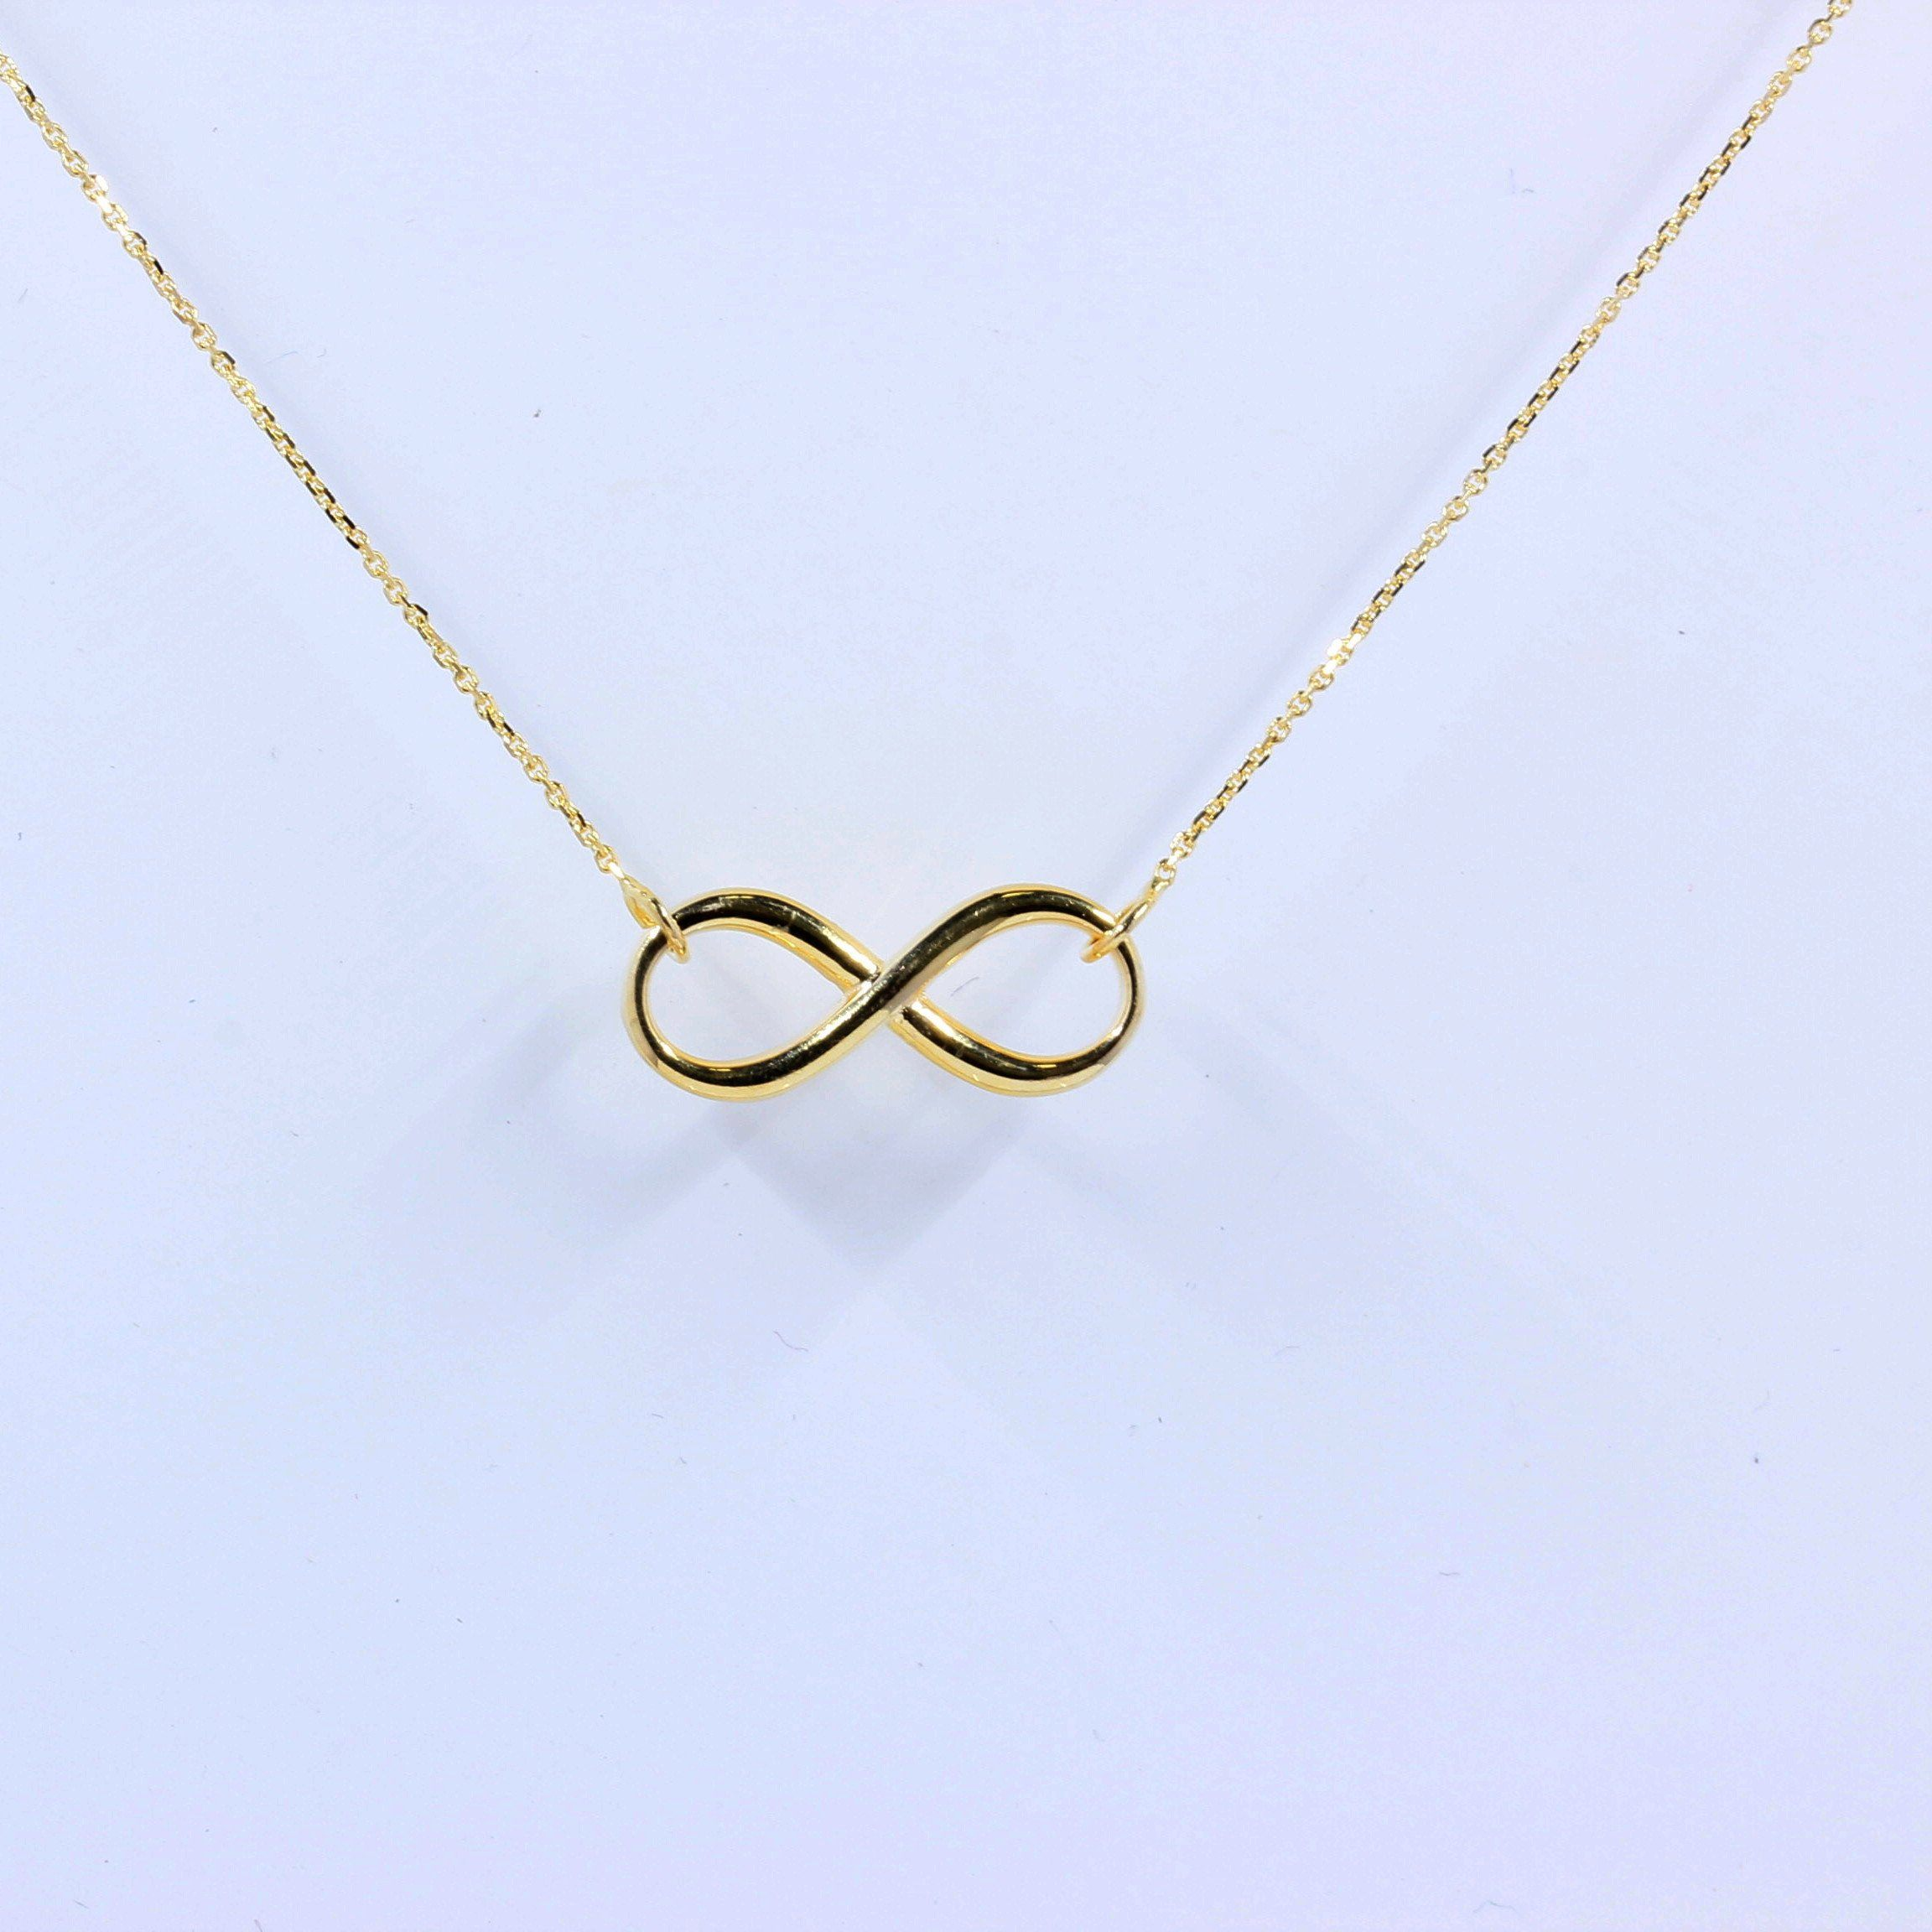 Solid 14K Gold Infinity Pendant Necklace Chain